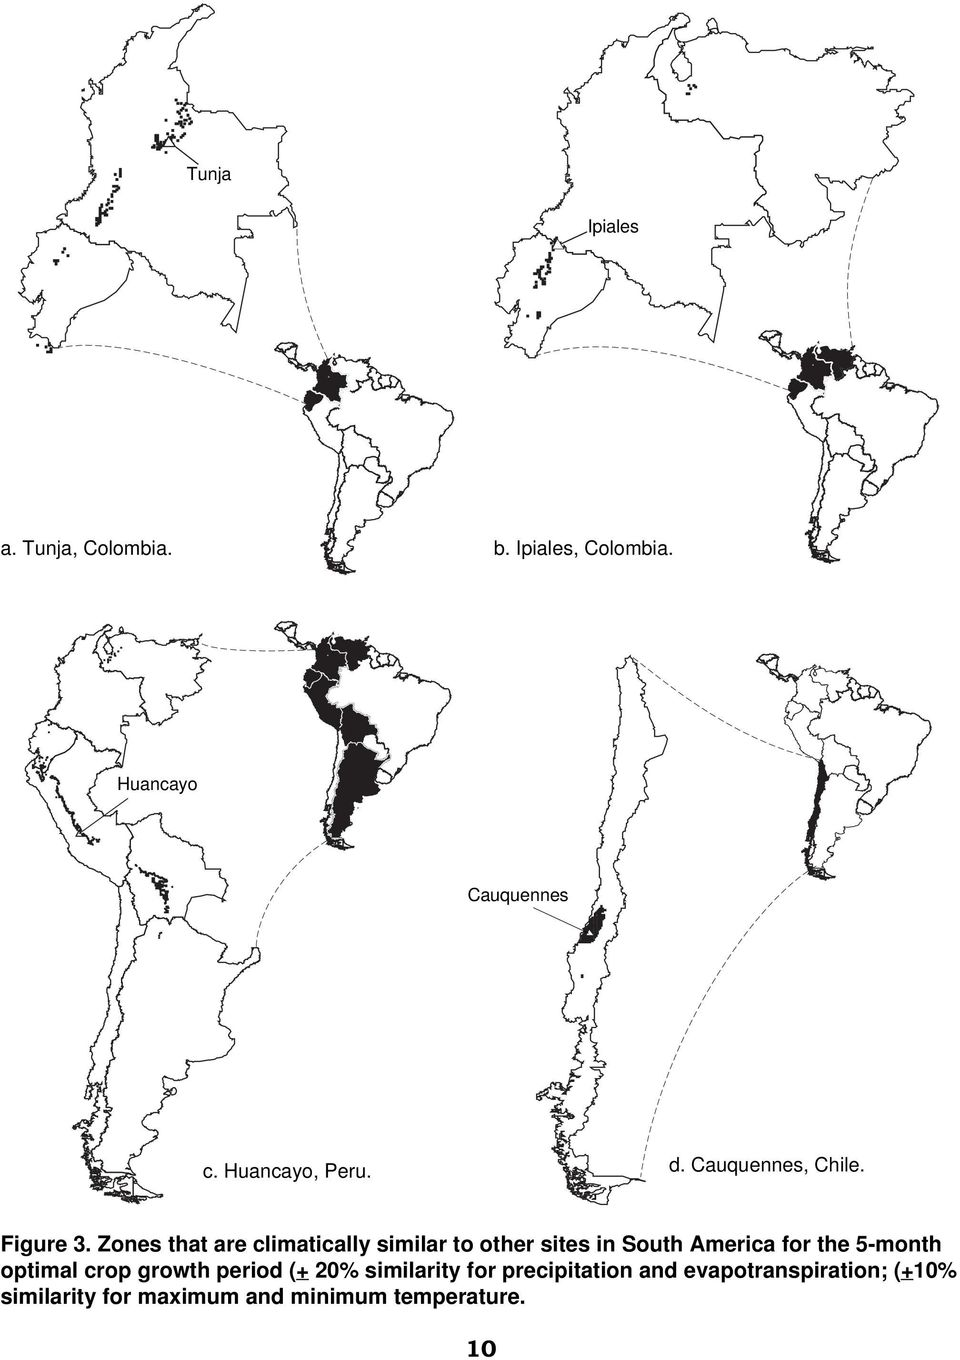 Zones that are climatically similar to other sites in South America for the 5-month